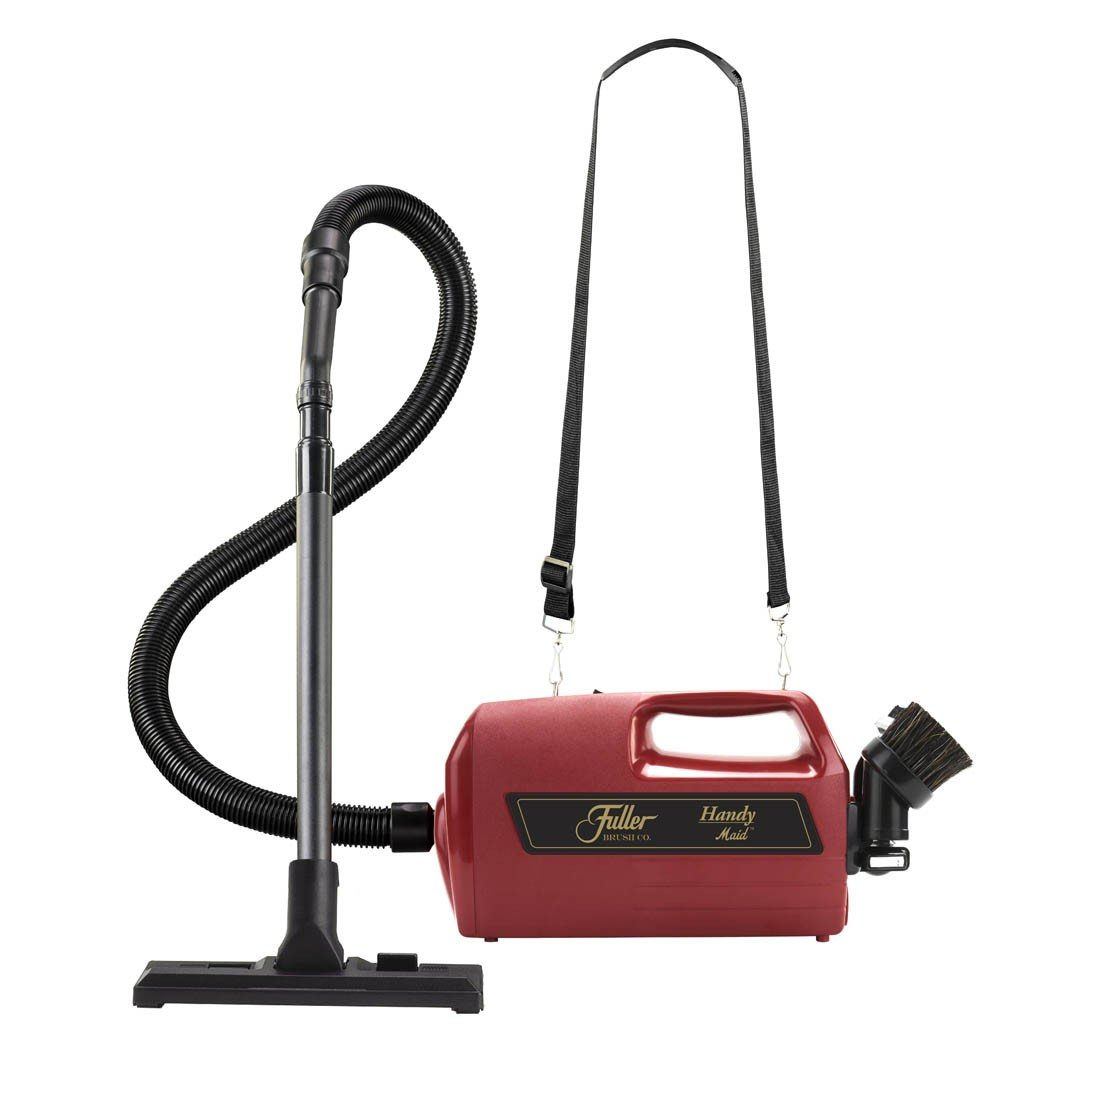 FULLER BRUSH FB500 Handy Maid Portable Canister vacuum